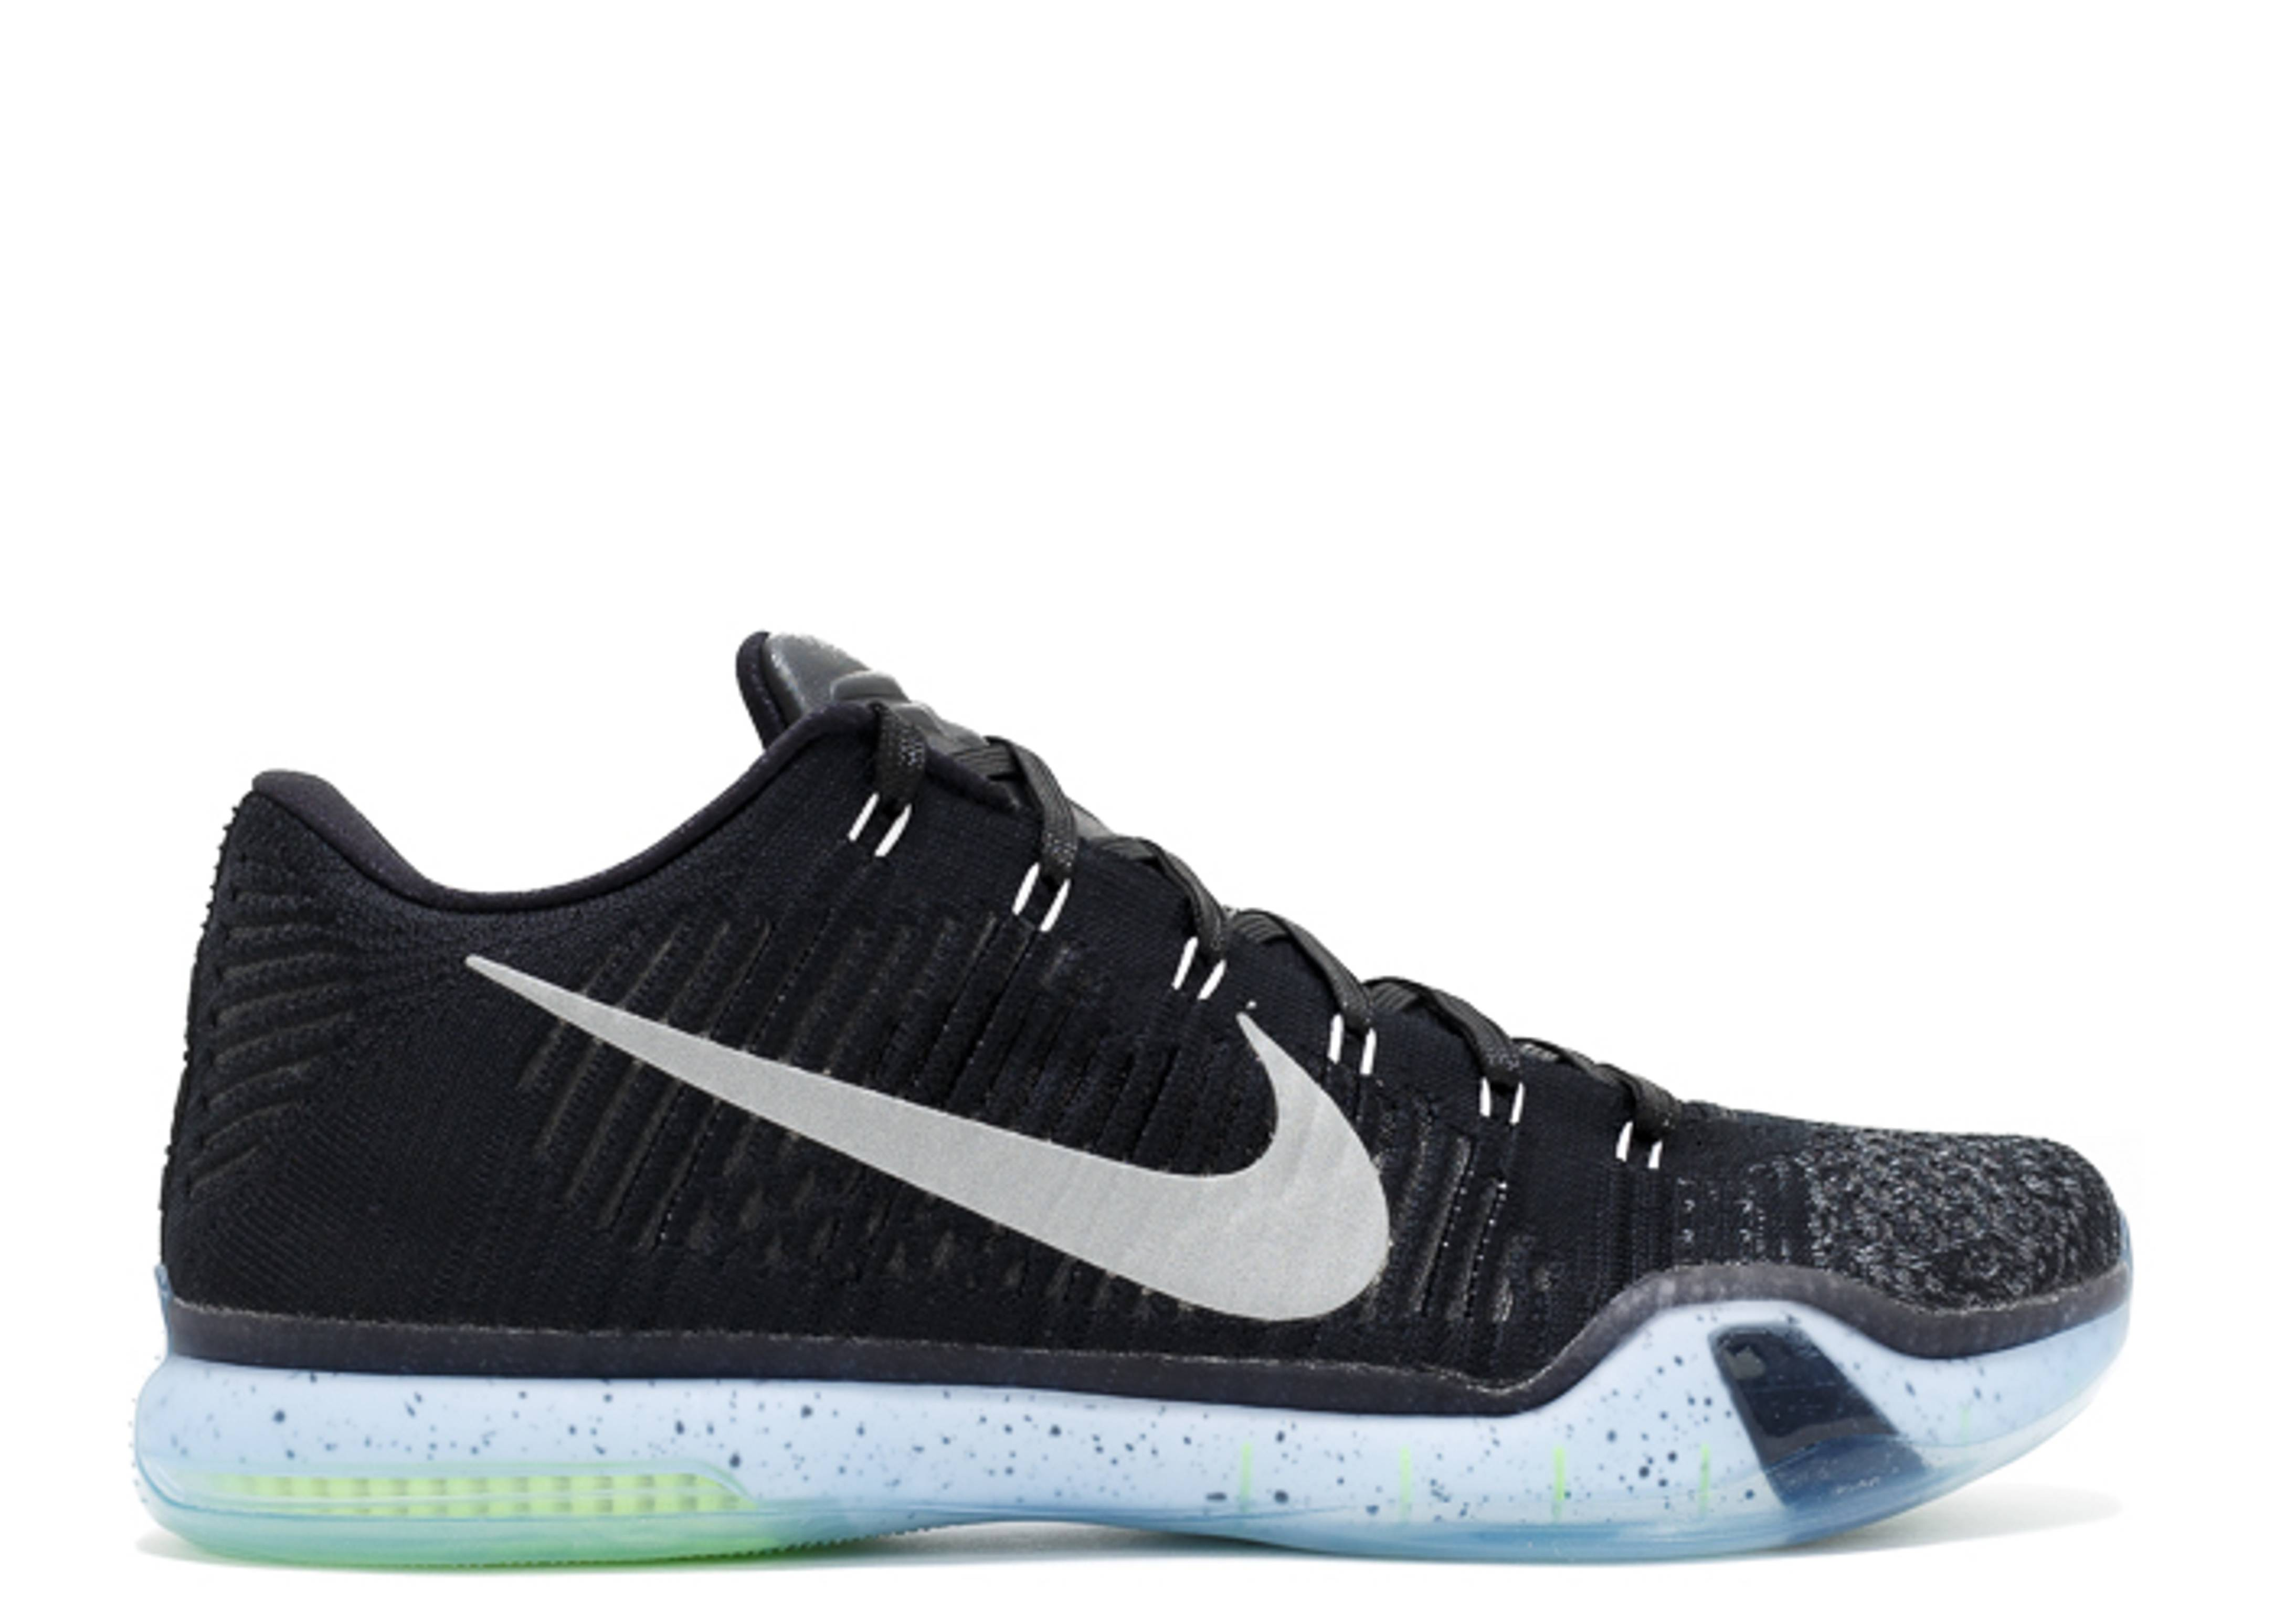 2a2976ca4110 Kobe 10 Elite Low Prm